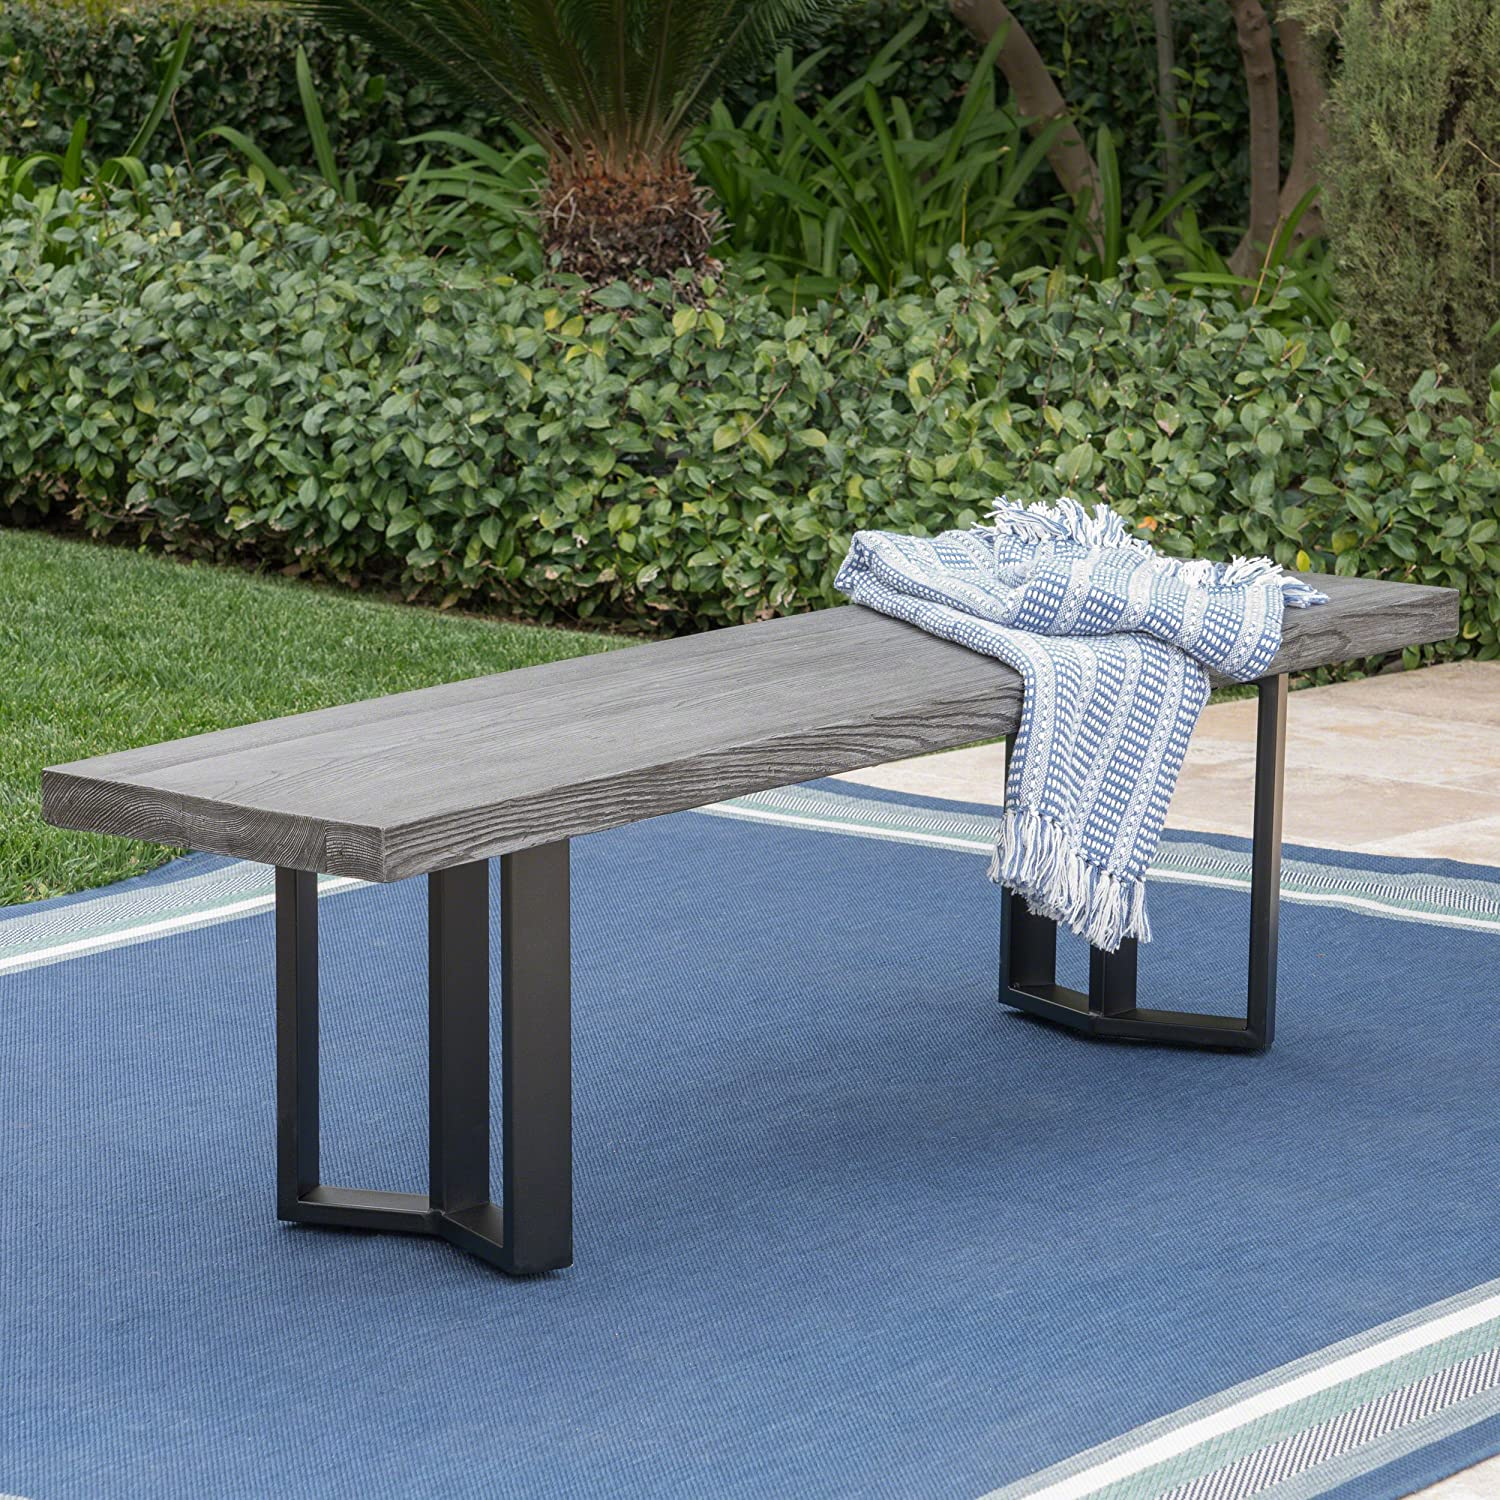 Christopher Knight Home 304104 Andre Outdoor Textured Grey Oak Finish Light Weight Concrete Dining Bench, Black